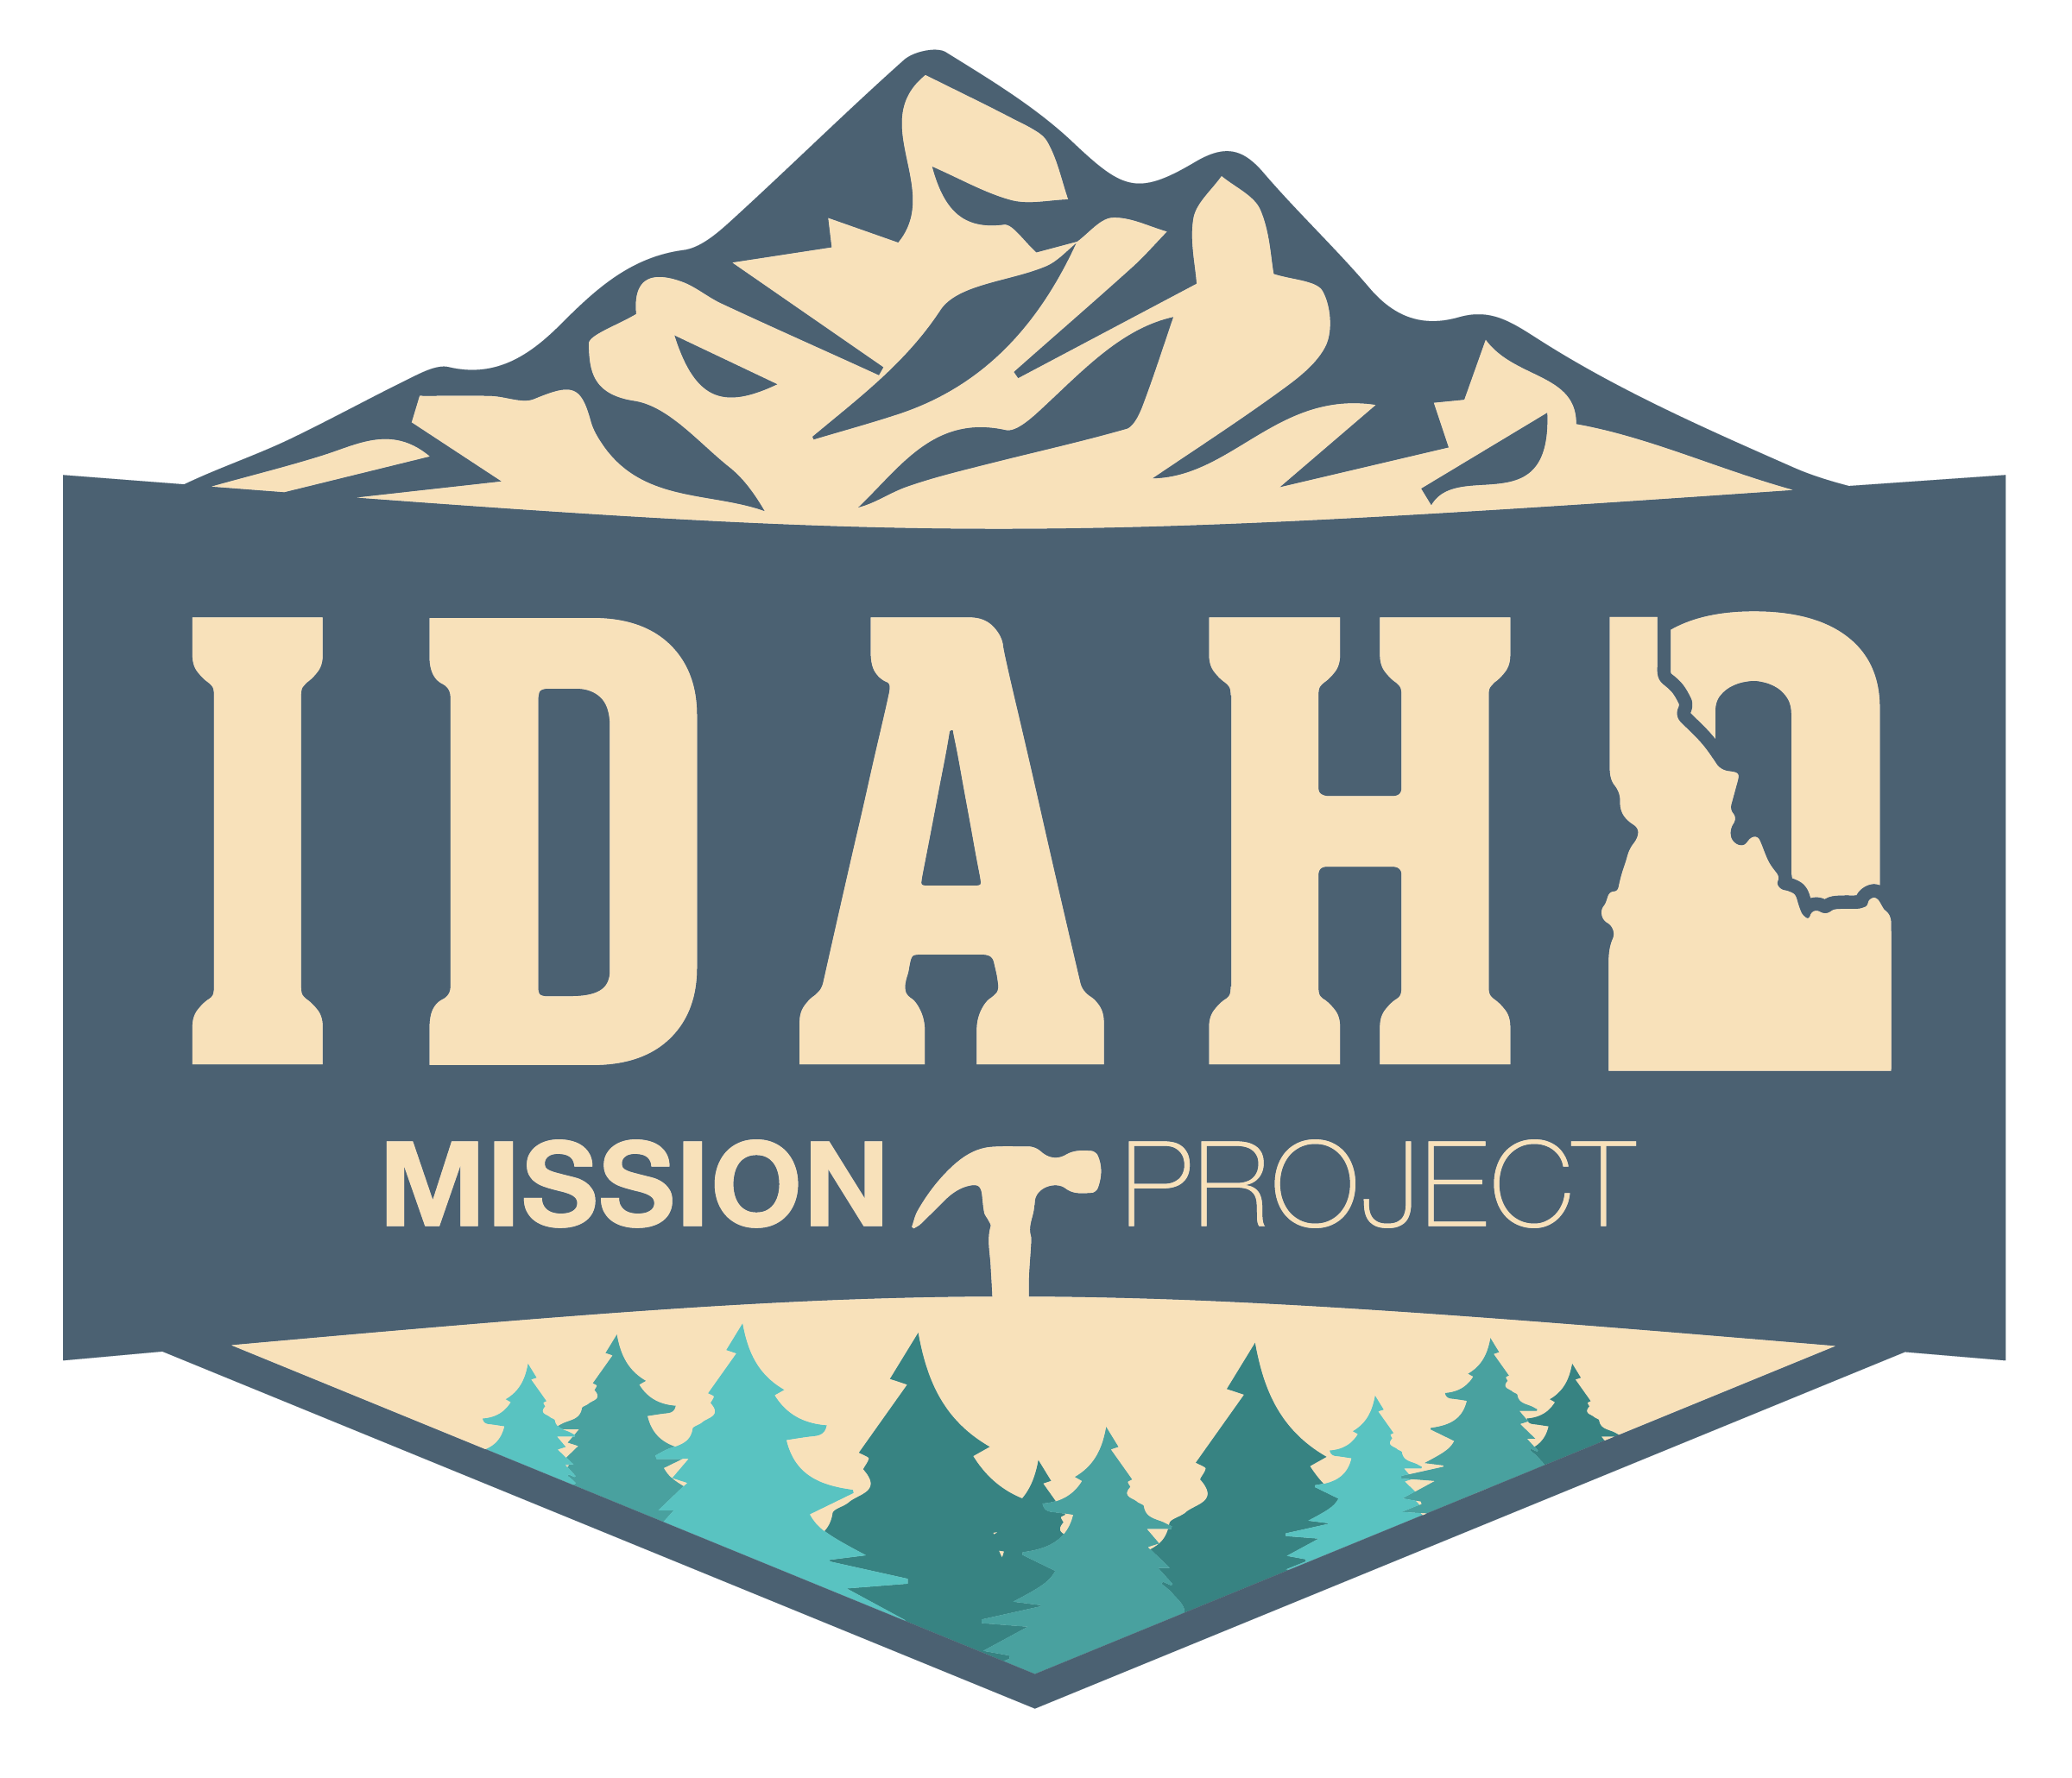 Idaho mission a and. Missions clipart service project